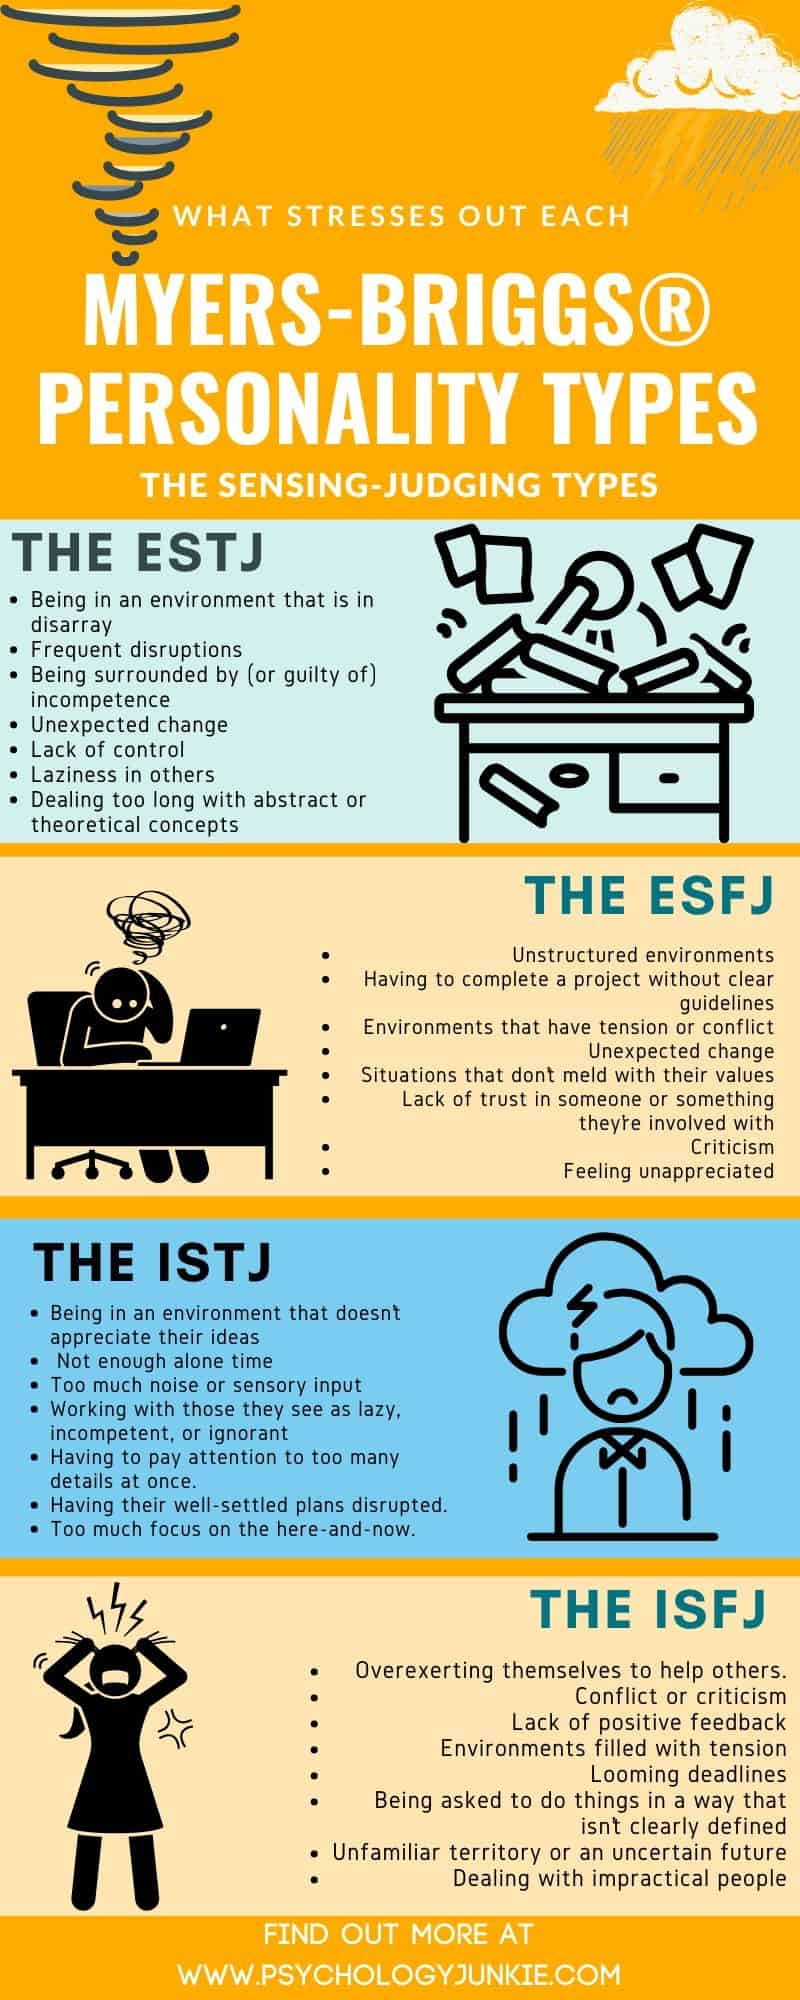 Discover what creates stress for the Sensing-Judging Myers-Briggs® personality types